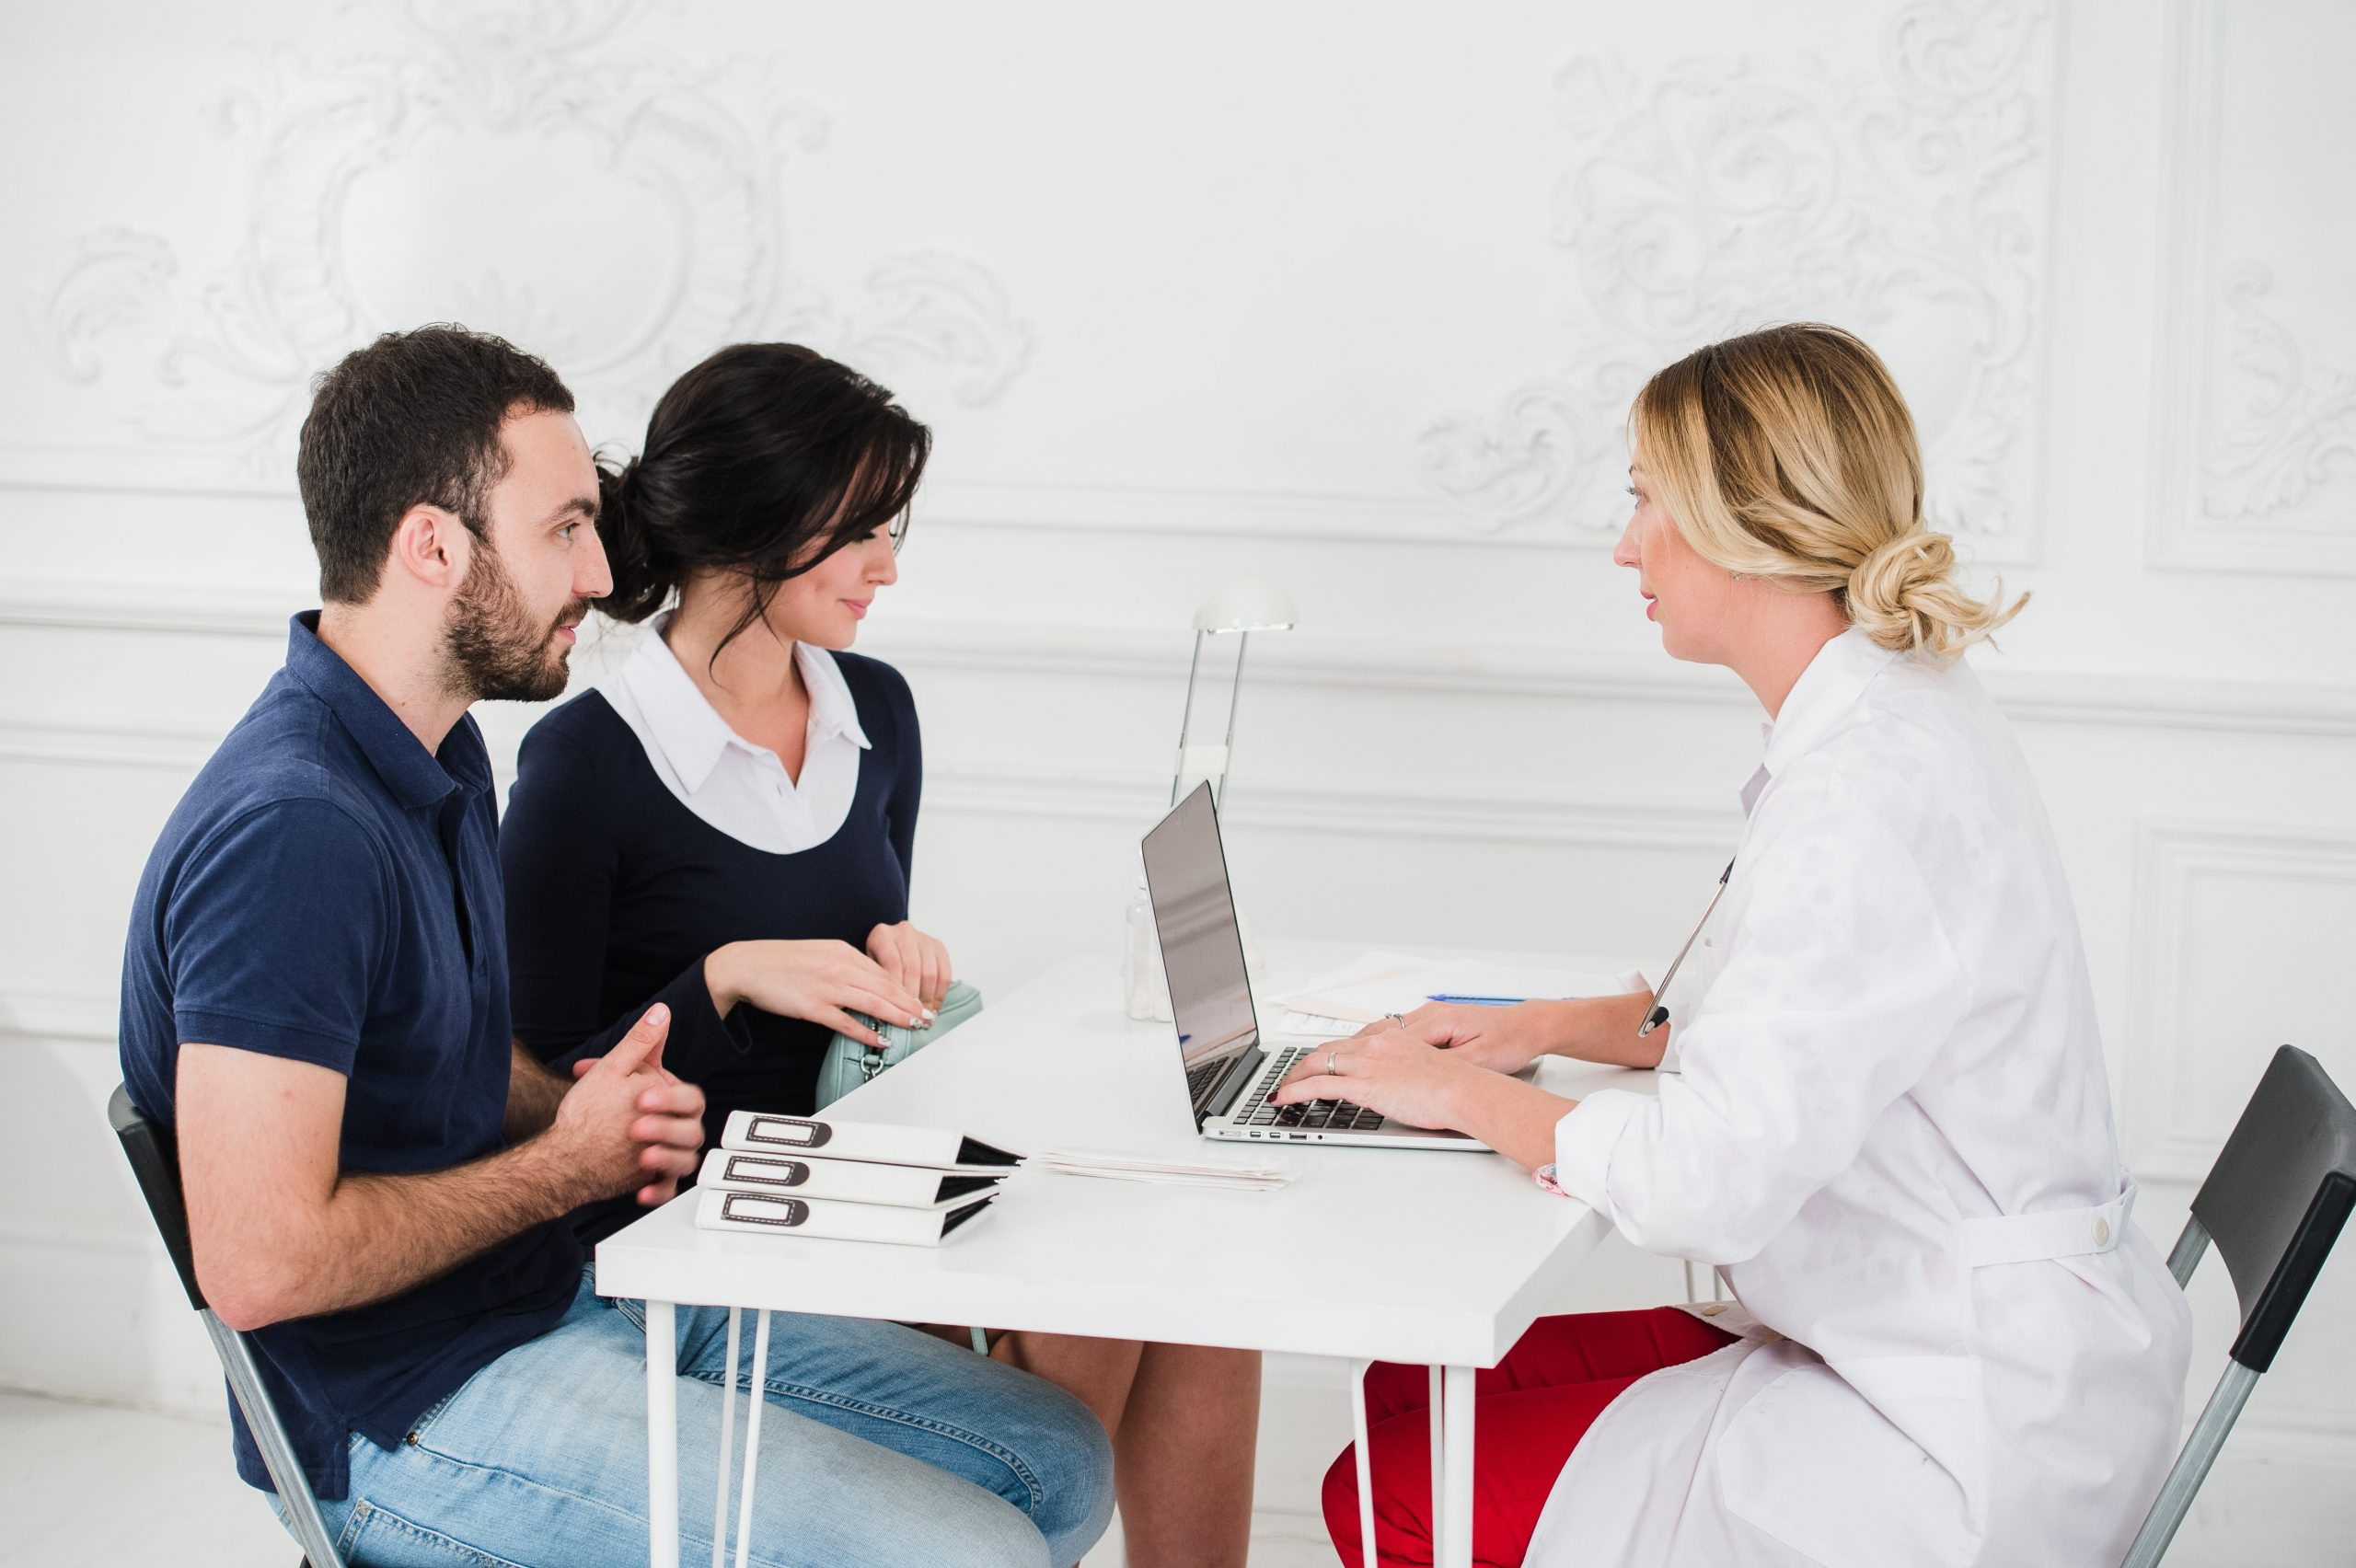 Young couple meeting with IVF doctor to learn about PGT (preimplantation genetic testing)